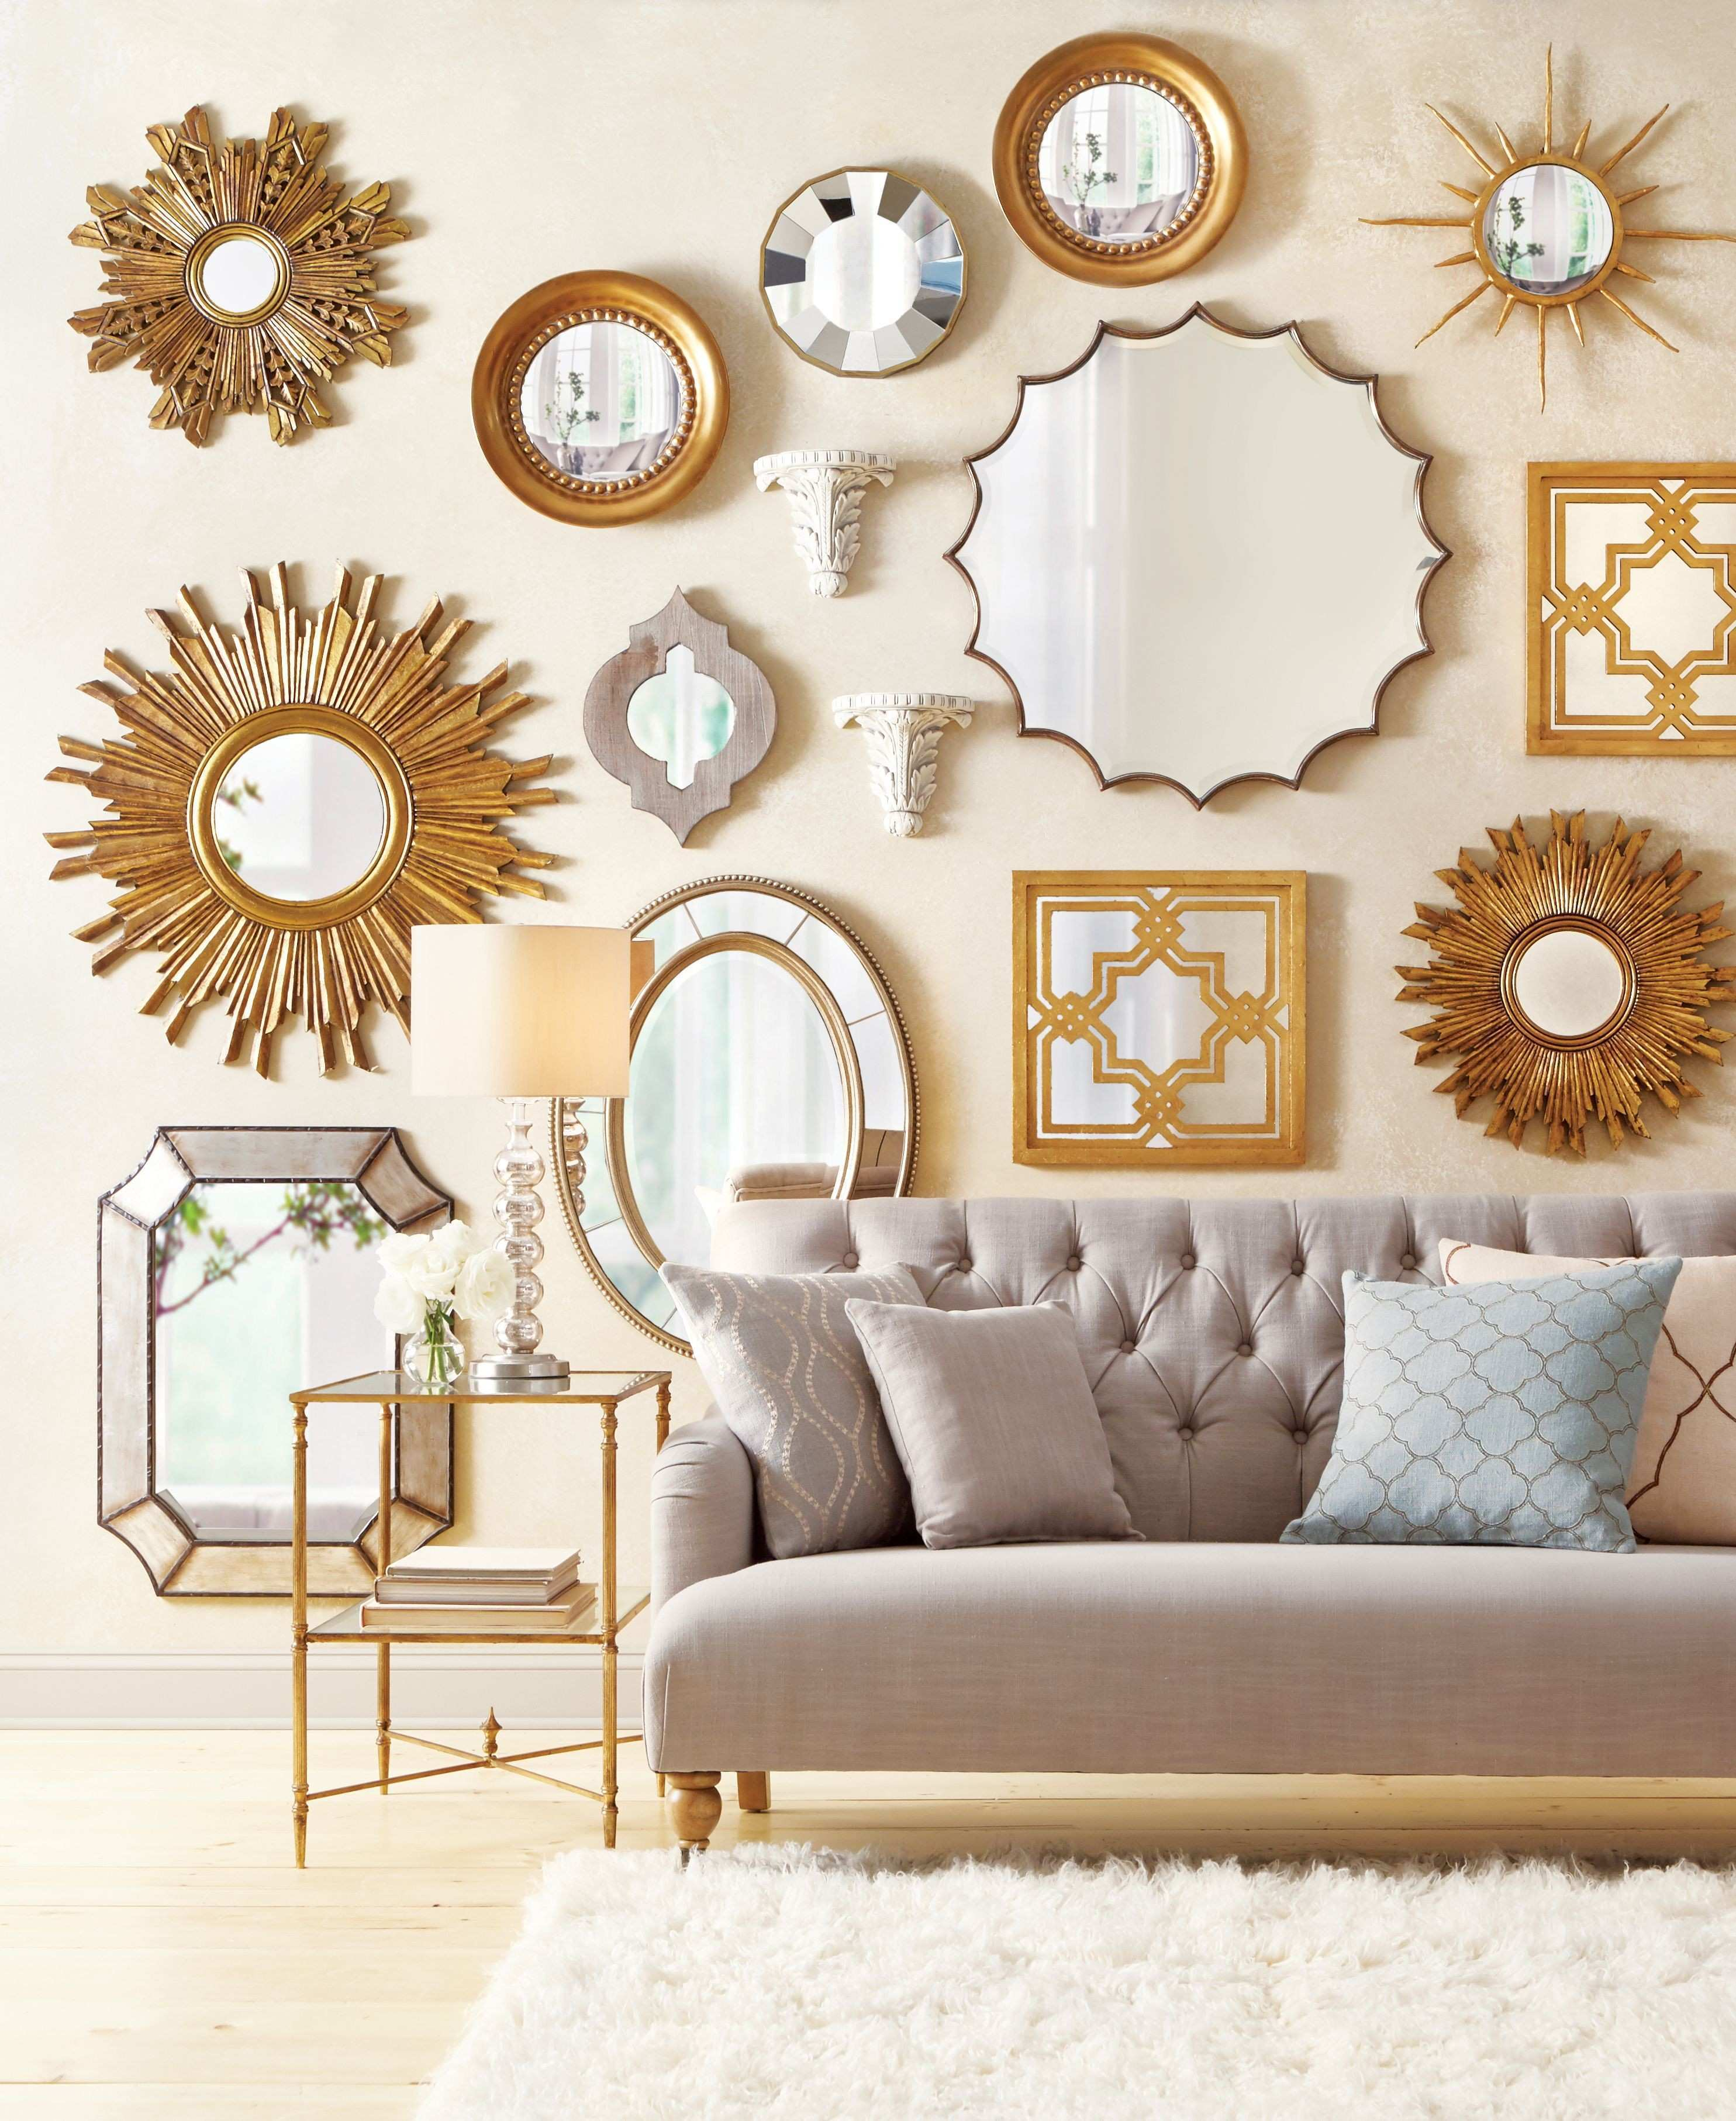 Mirrors make a wall stand out so well Love this gallery wall design